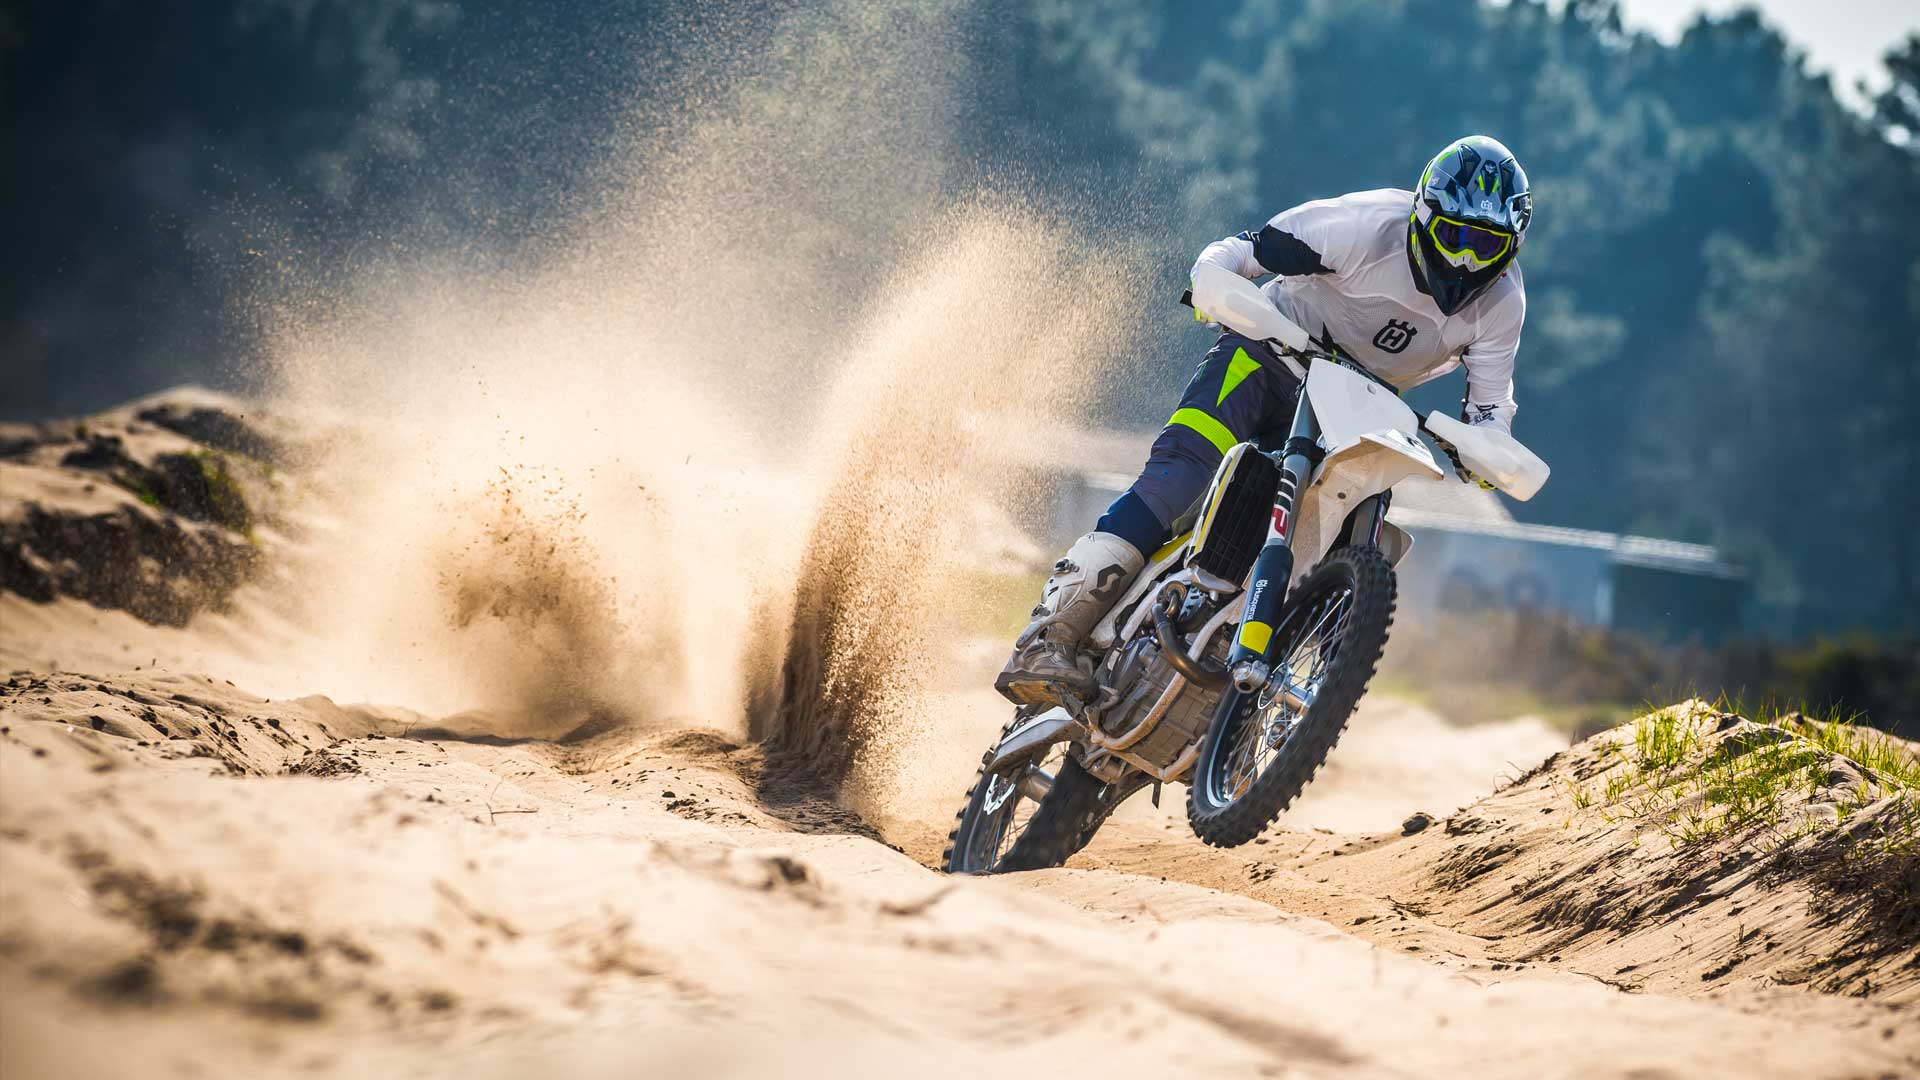 Husqvarna Motorcycles At Midwest Racing Wiltshire Uk